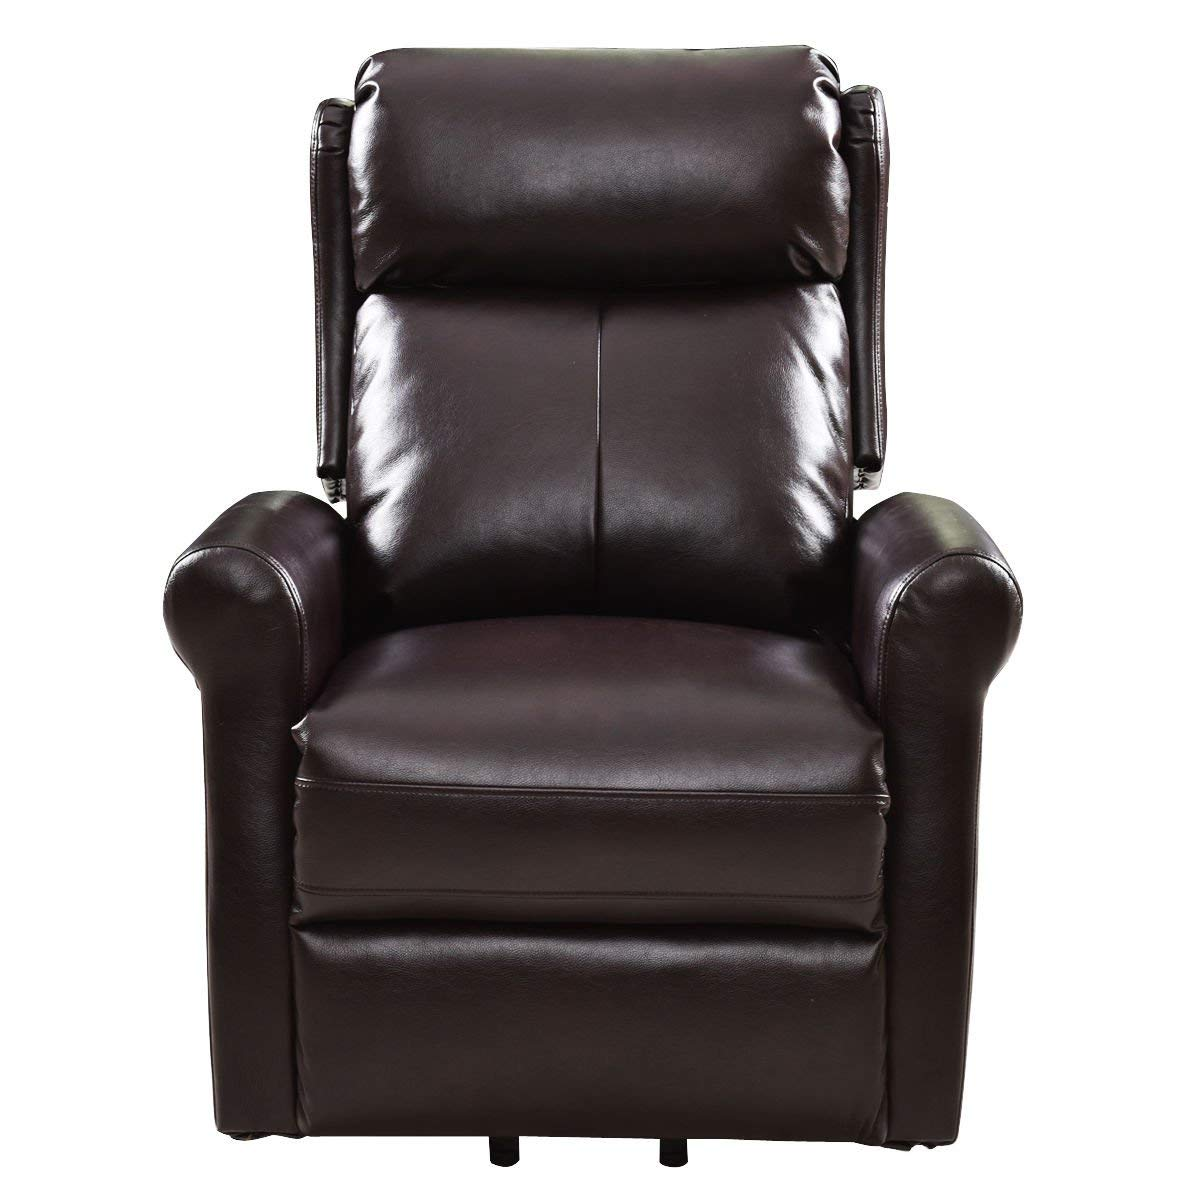 Giantex Power Lift Recliner Chair Home Theater Seating Living Room Sofa Chair PU Leather Electric Recliners with Remote Control Heavy Duty Safety Motion for Elders